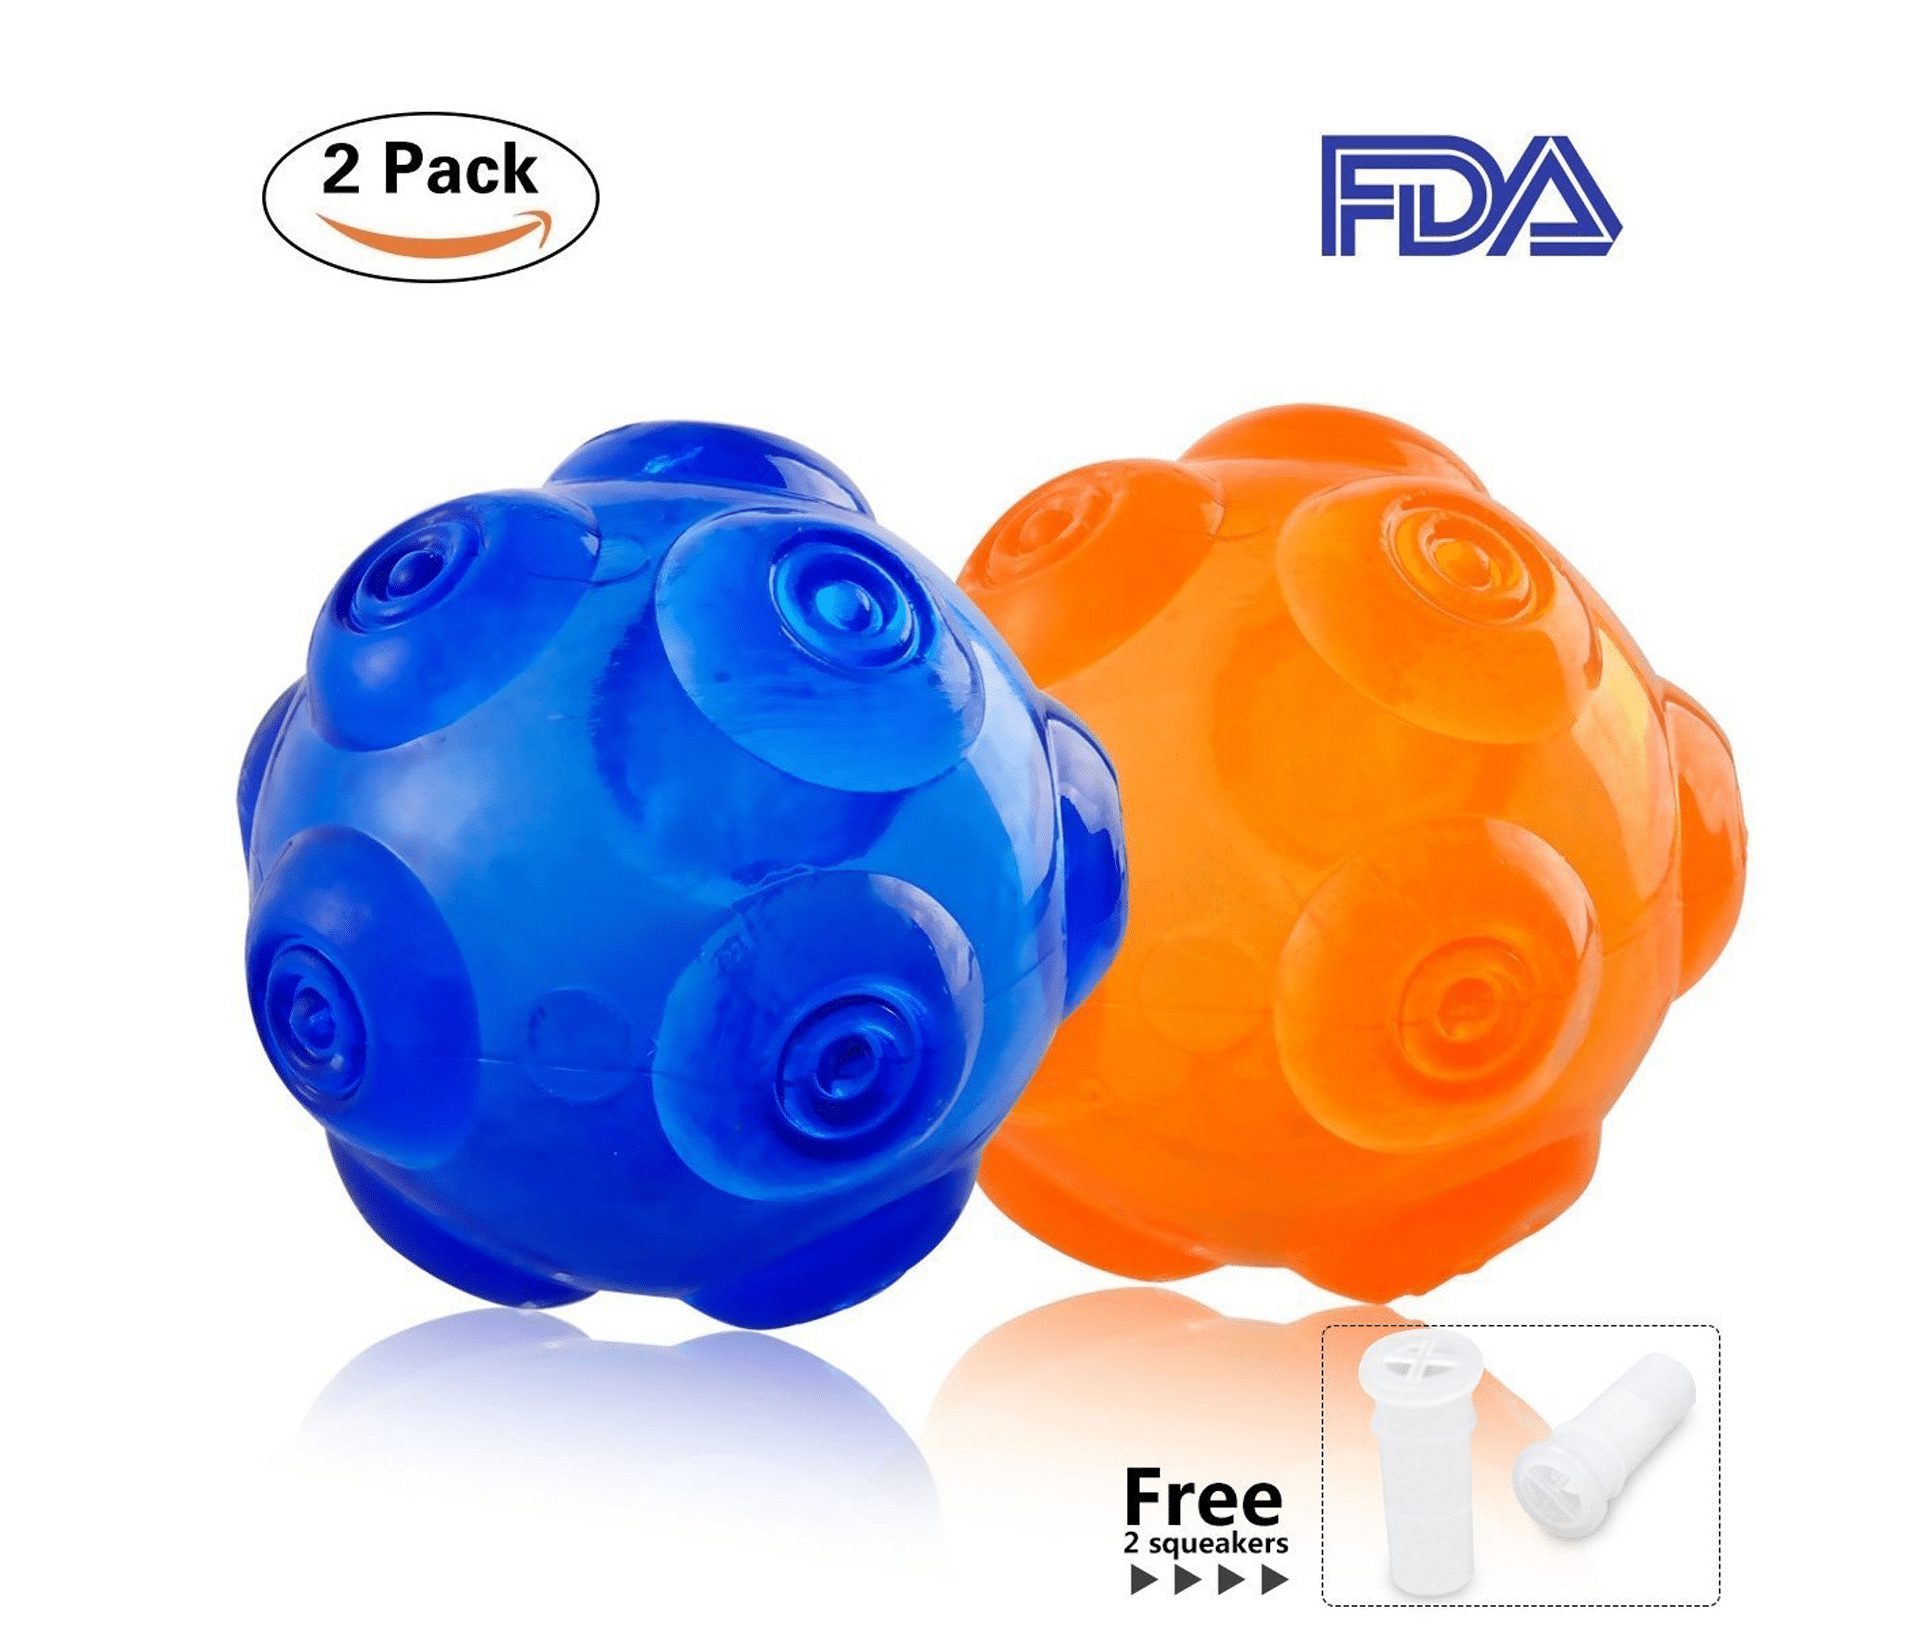 PERSUPER 3.6 Inch Durable Pet Dog Balls